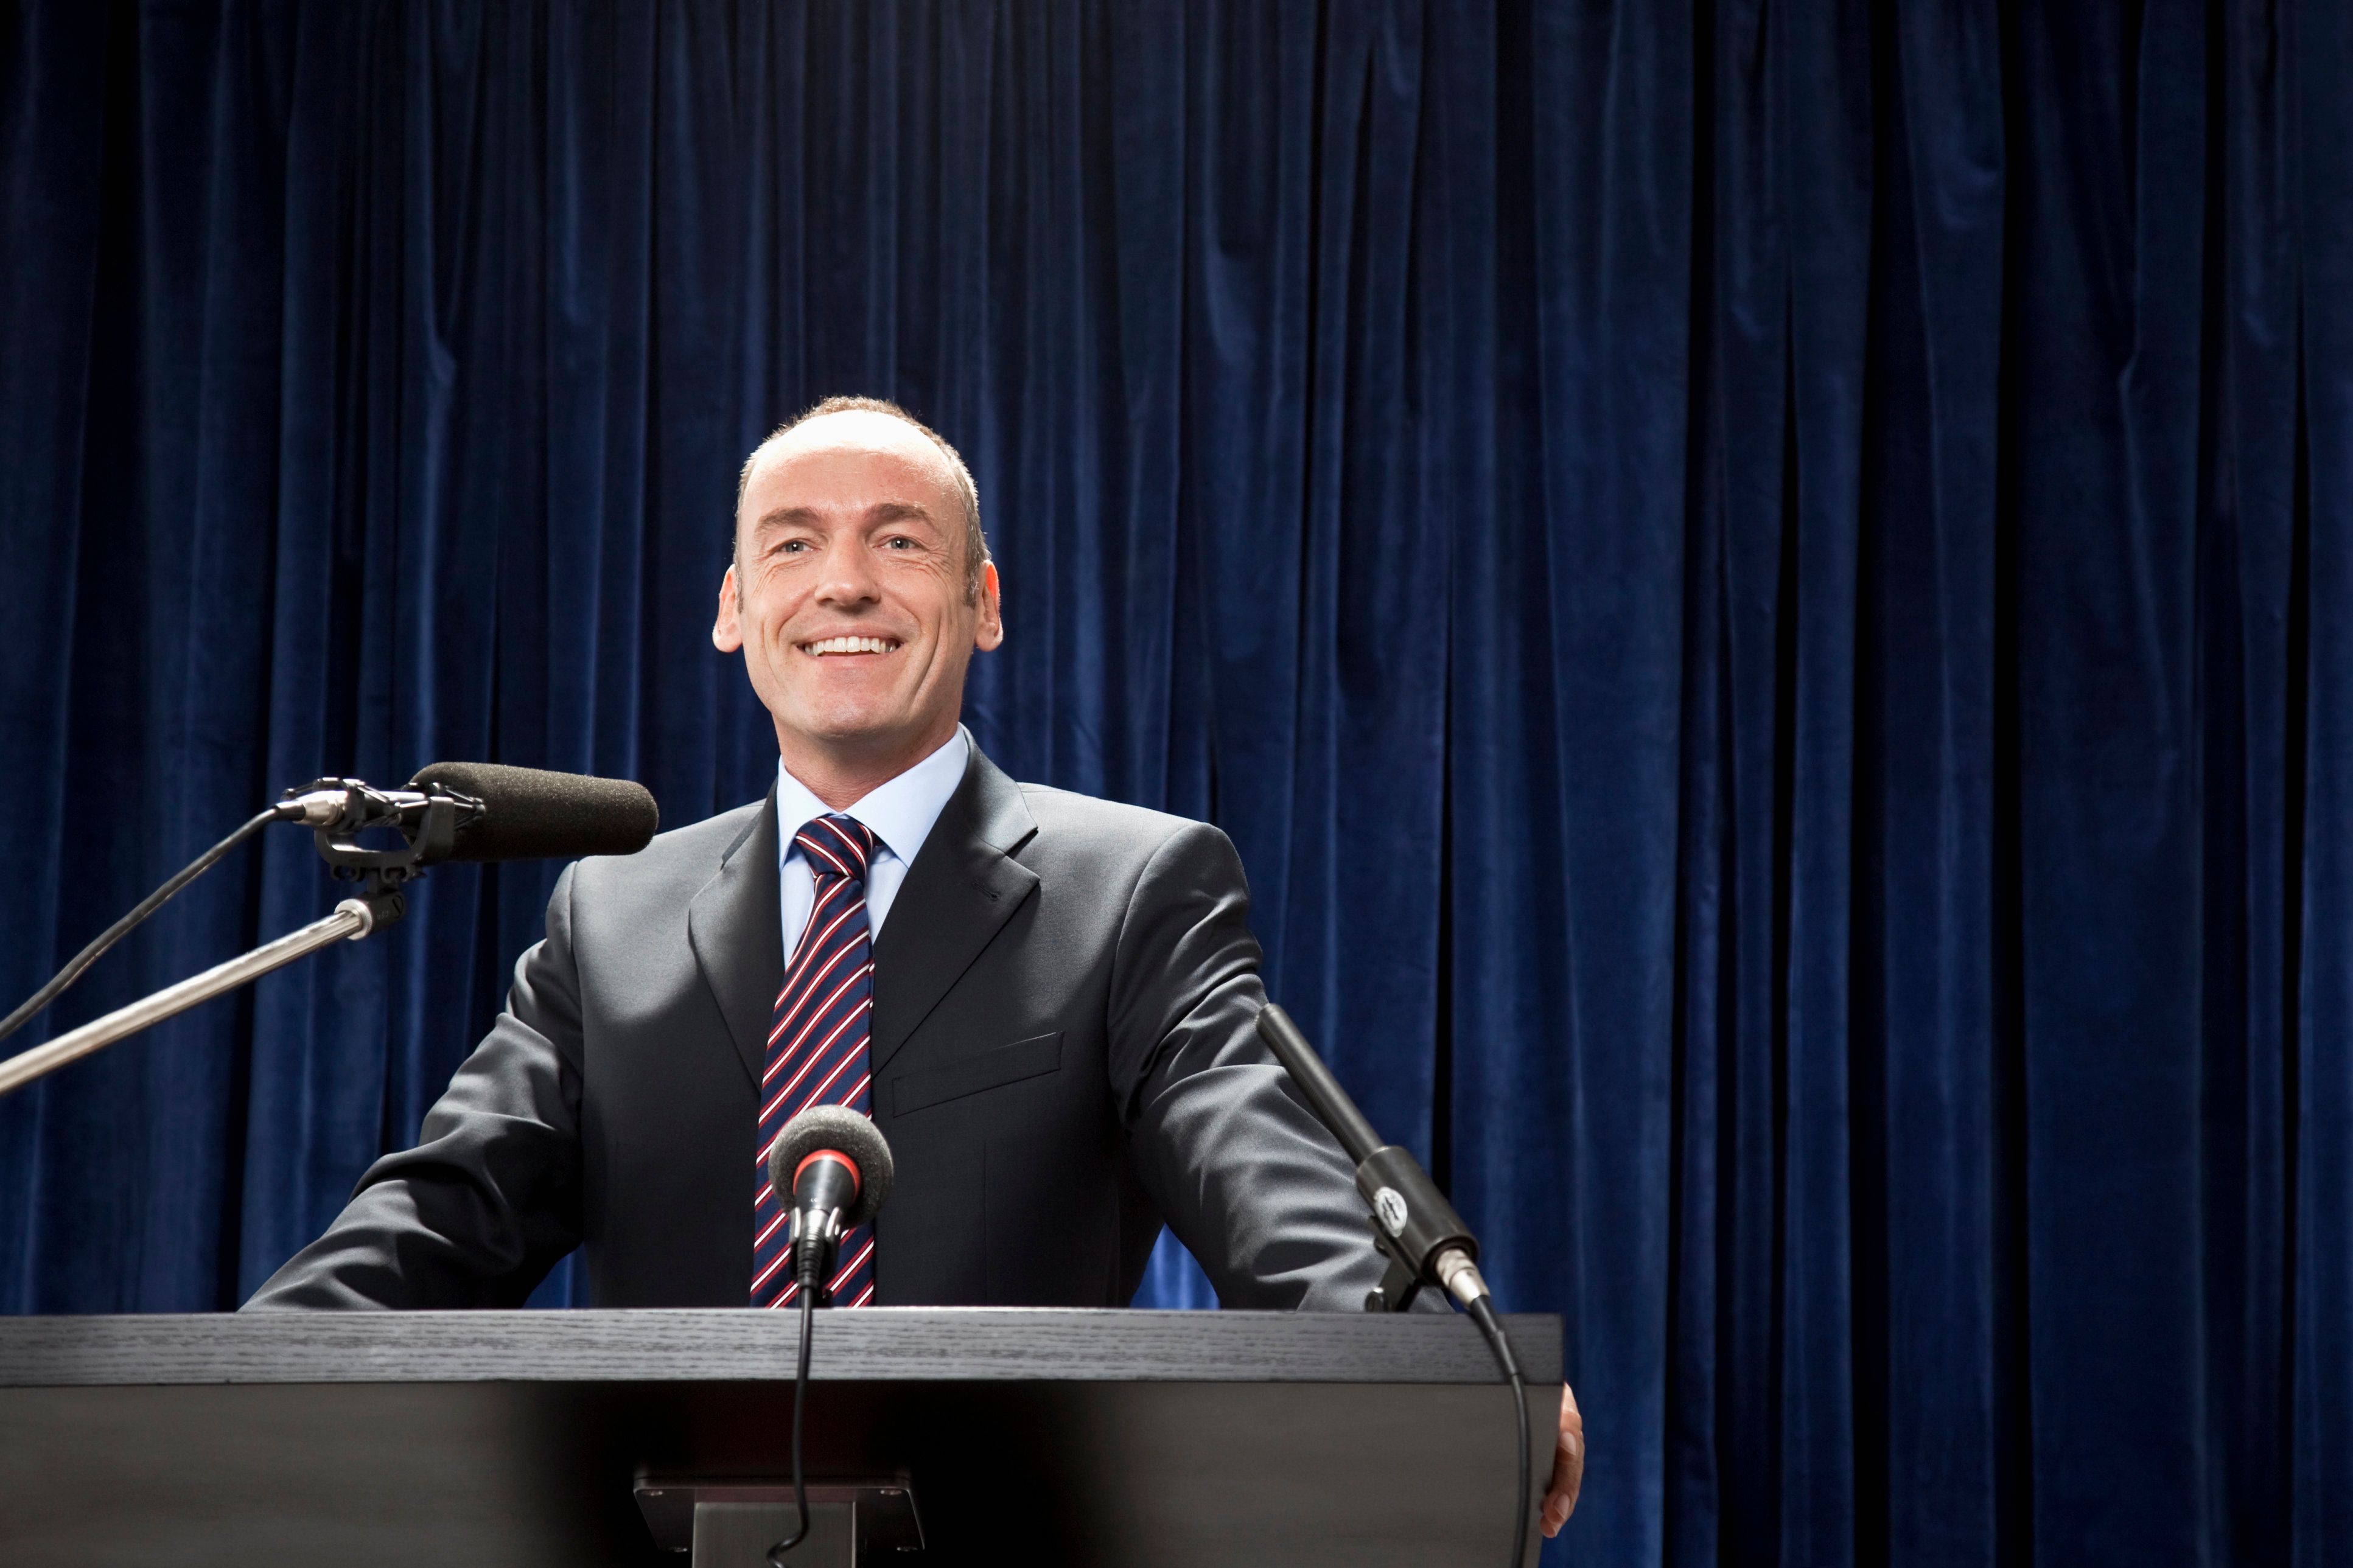 A man in a suit standing at a lectern